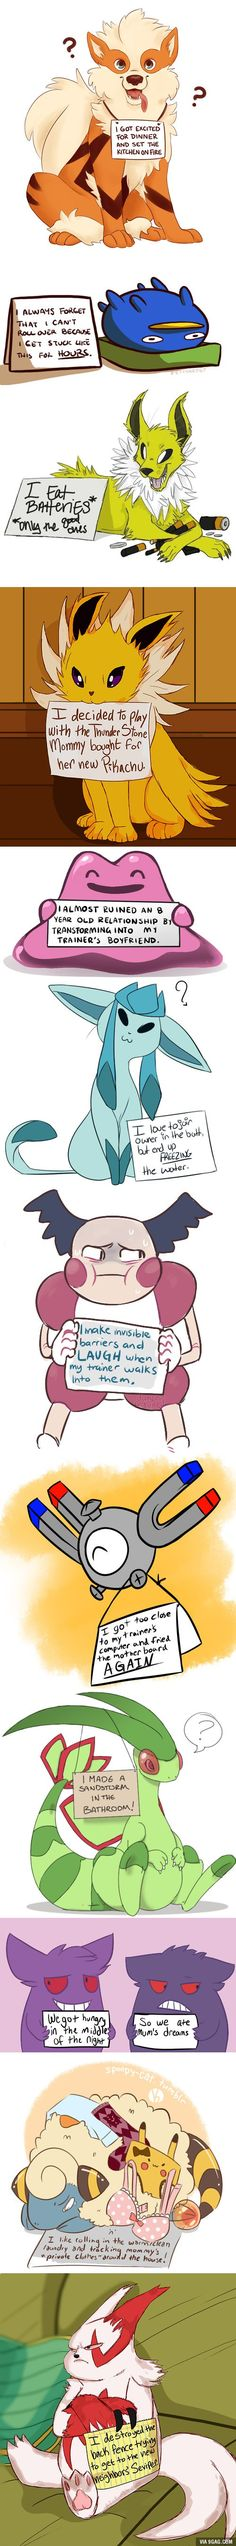 Pokemon Shaming! Too funny! And Arcanine is so cute! <3